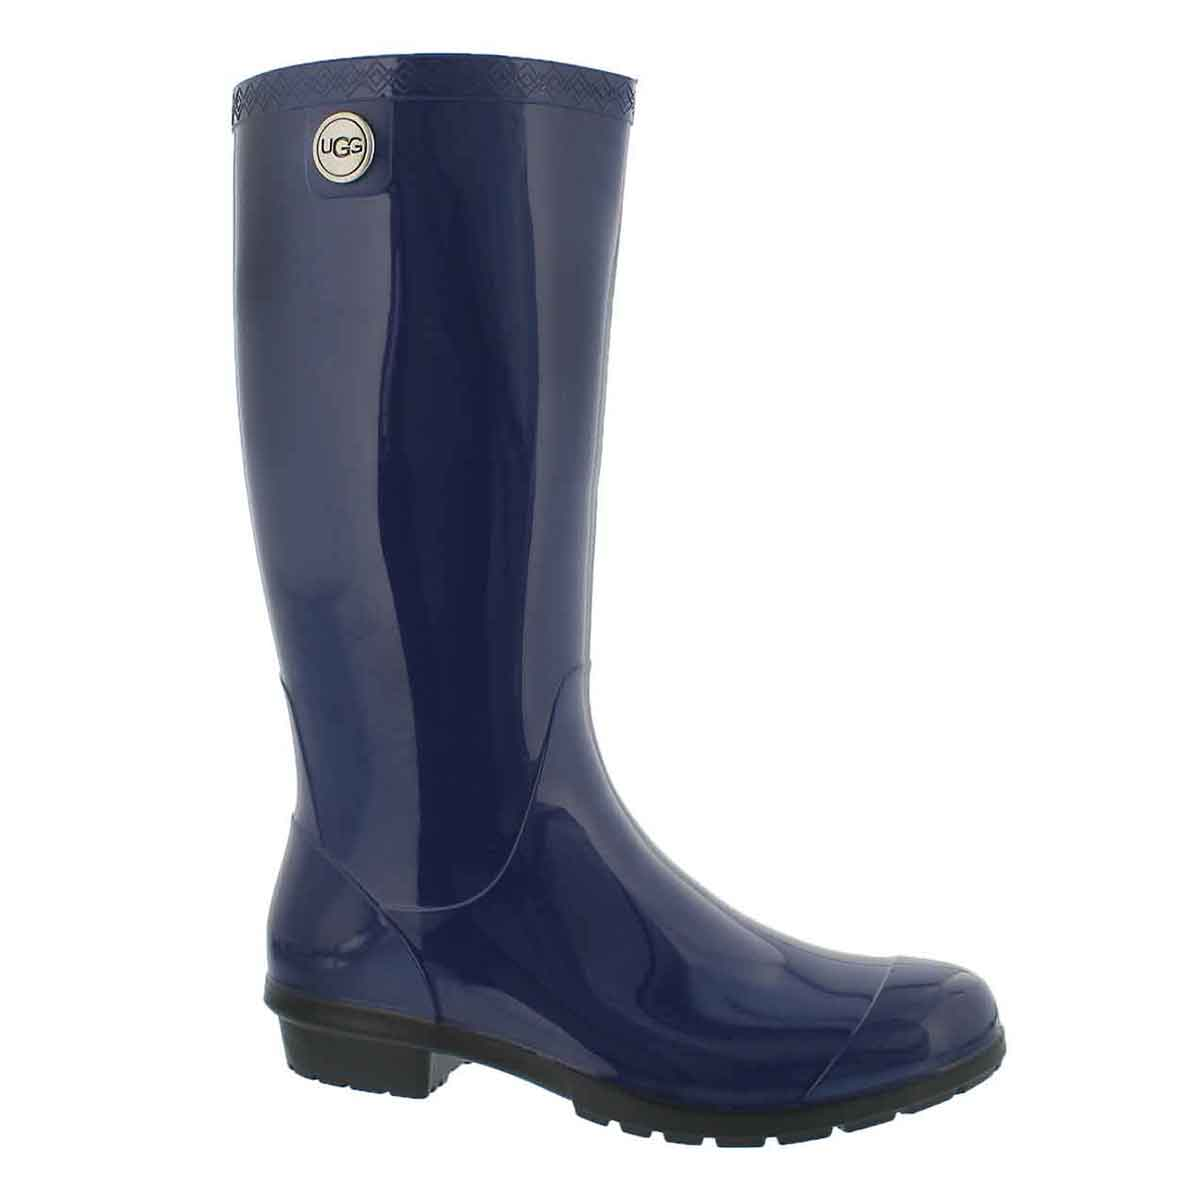 Women's SHAYE blue jay waterproof rain boots